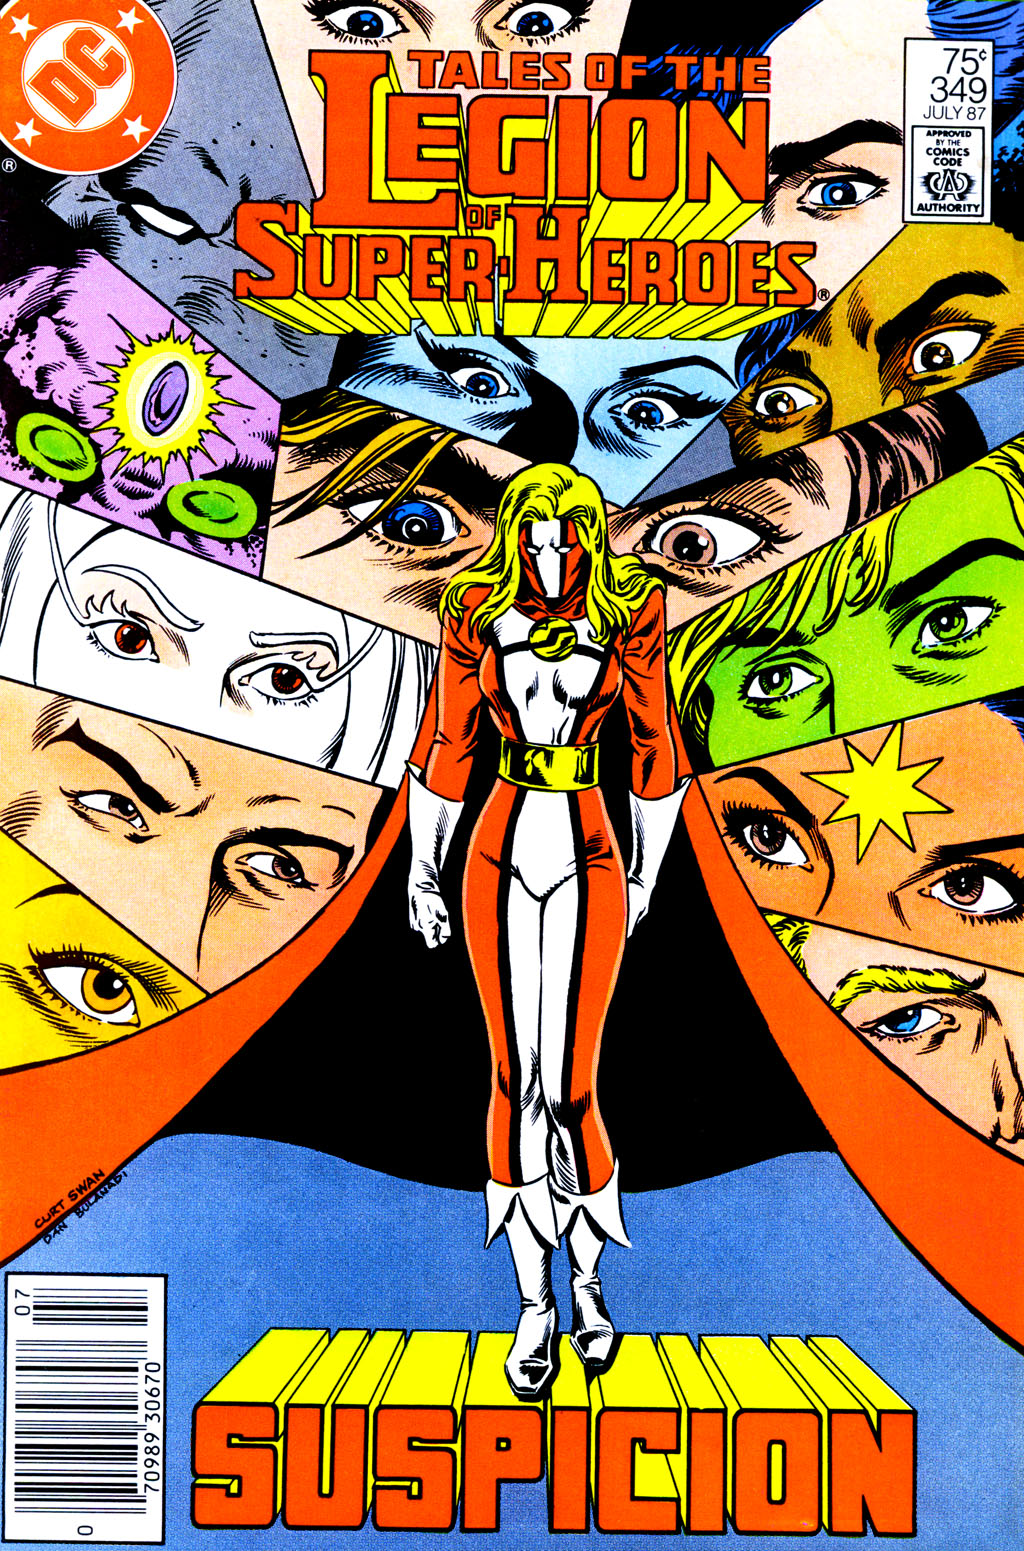 Tales of the Legion Issue #349 #36 - English 1